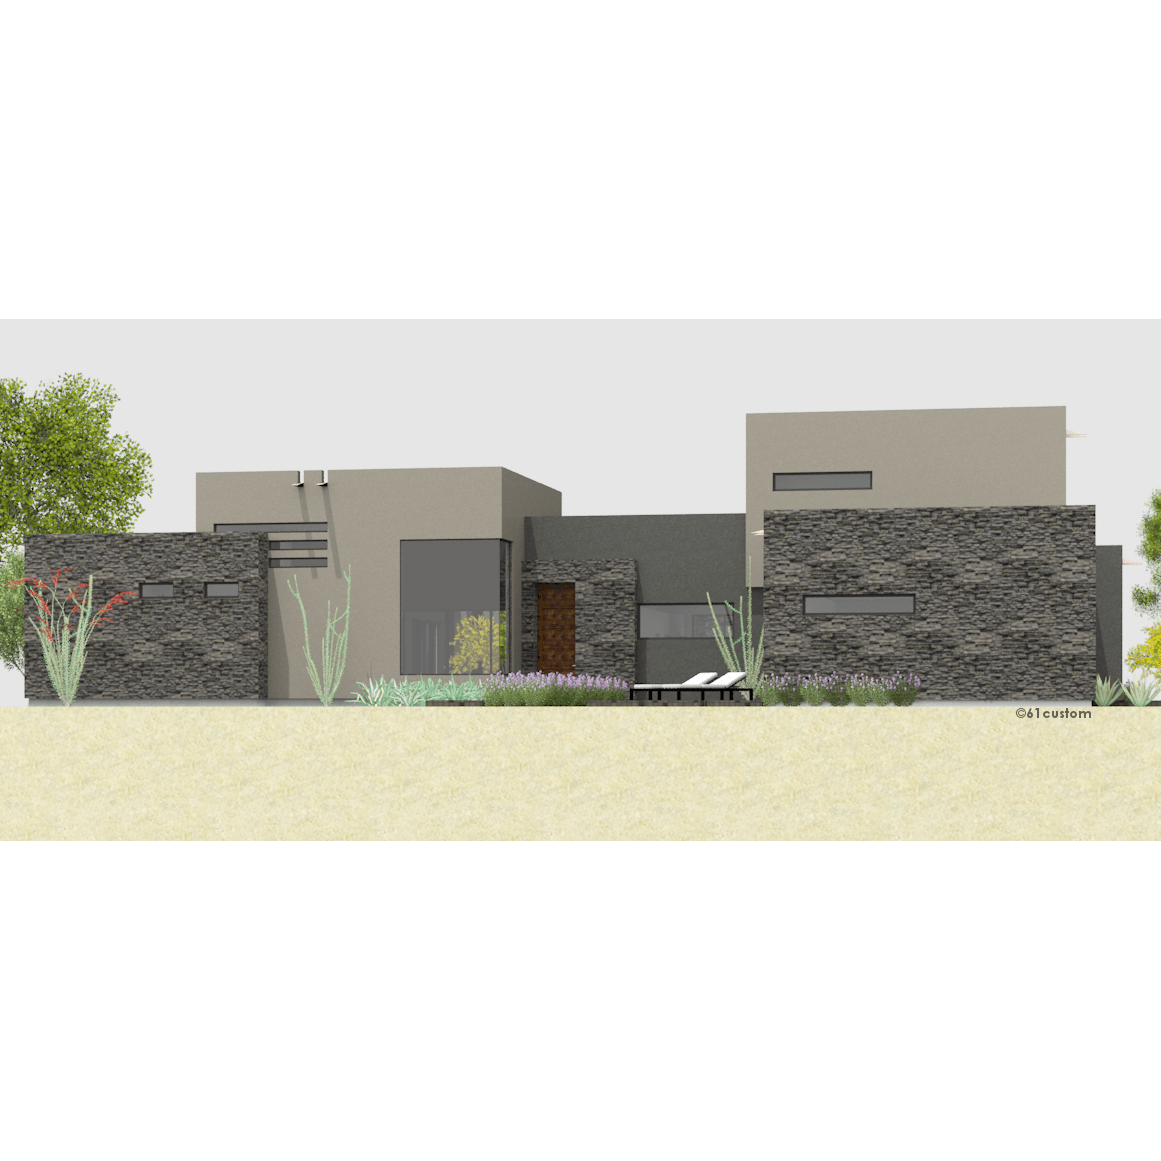 Courtyard60 luxury modern courtyard house plan for Contemporary courtyard houses